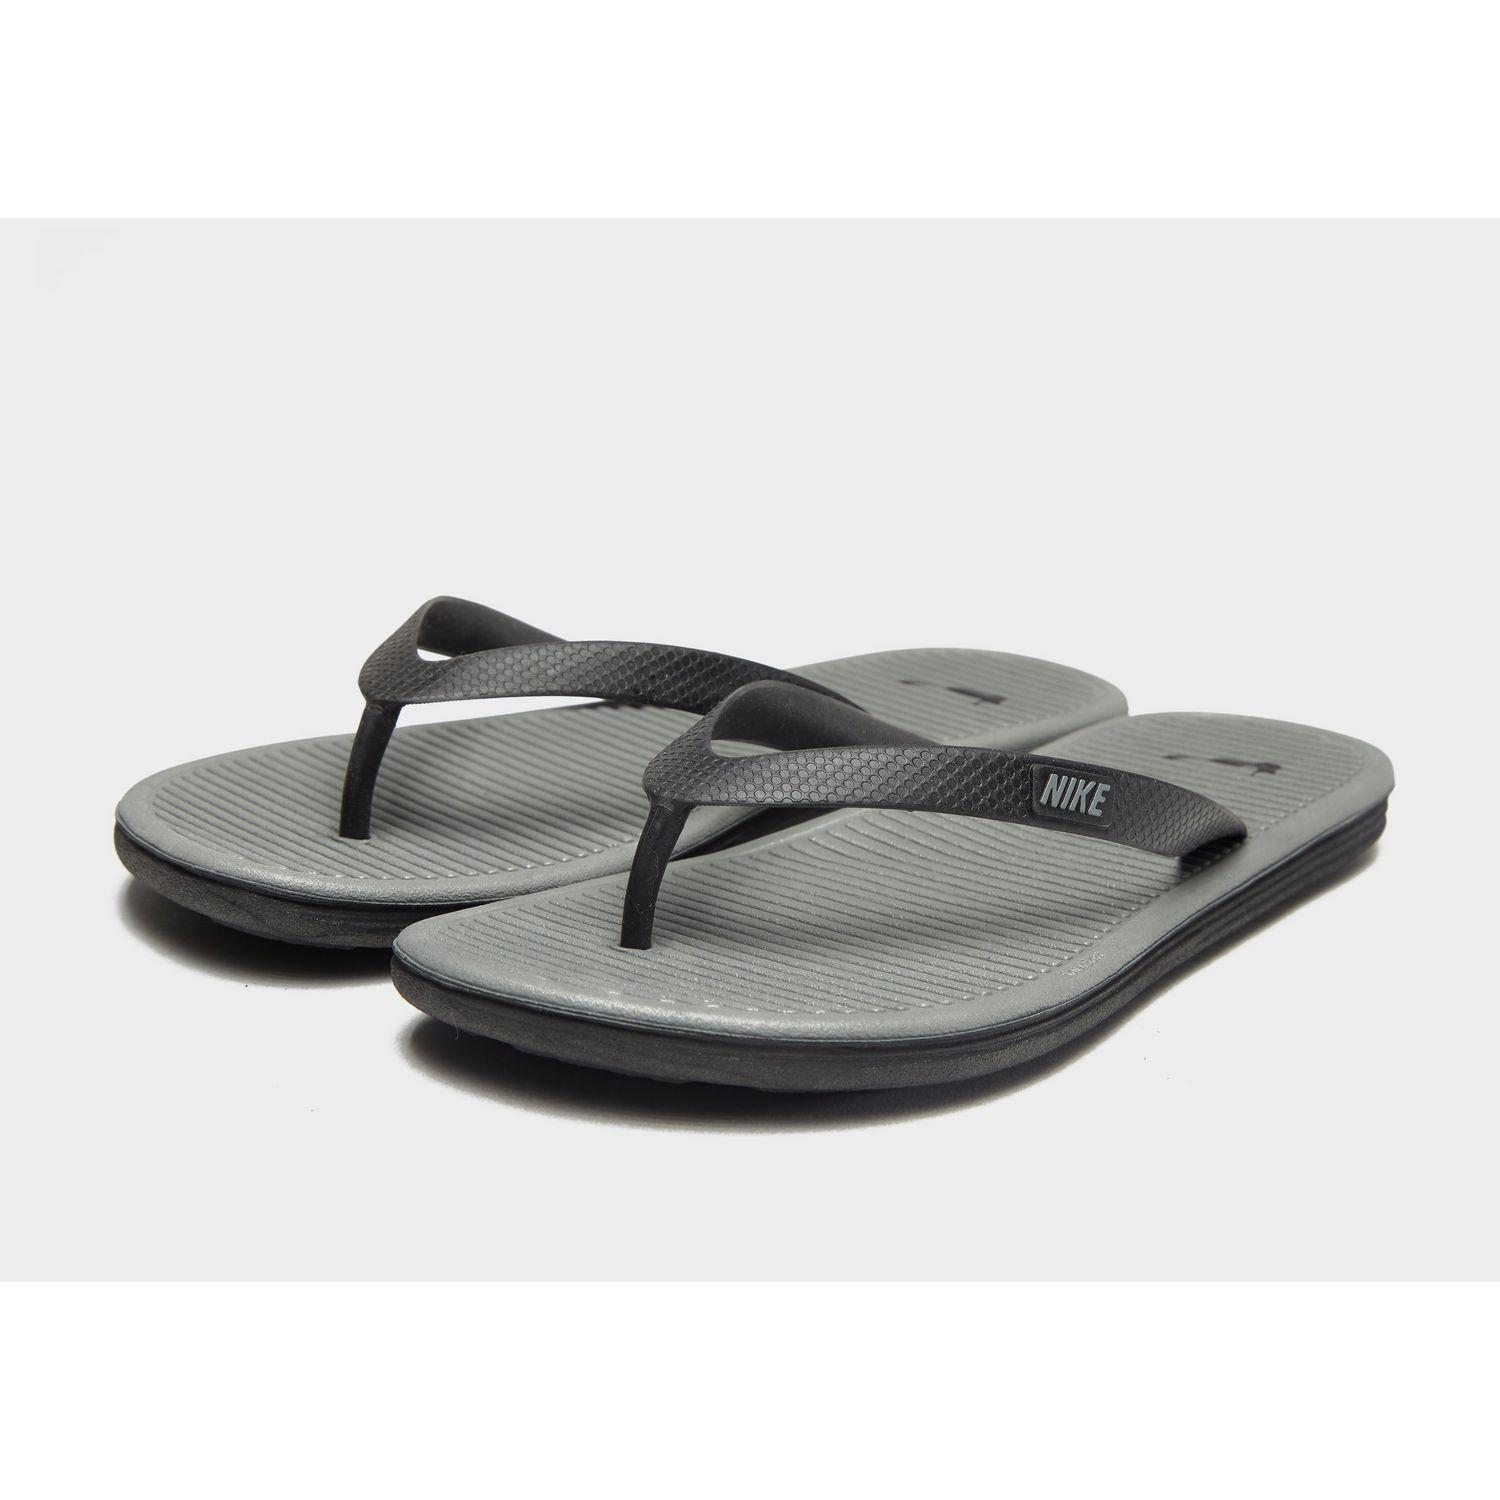 88f3e87cf29 Nike - Gray Solarsoft Ii Flip Flops for Men - Lyst. View fullscreen